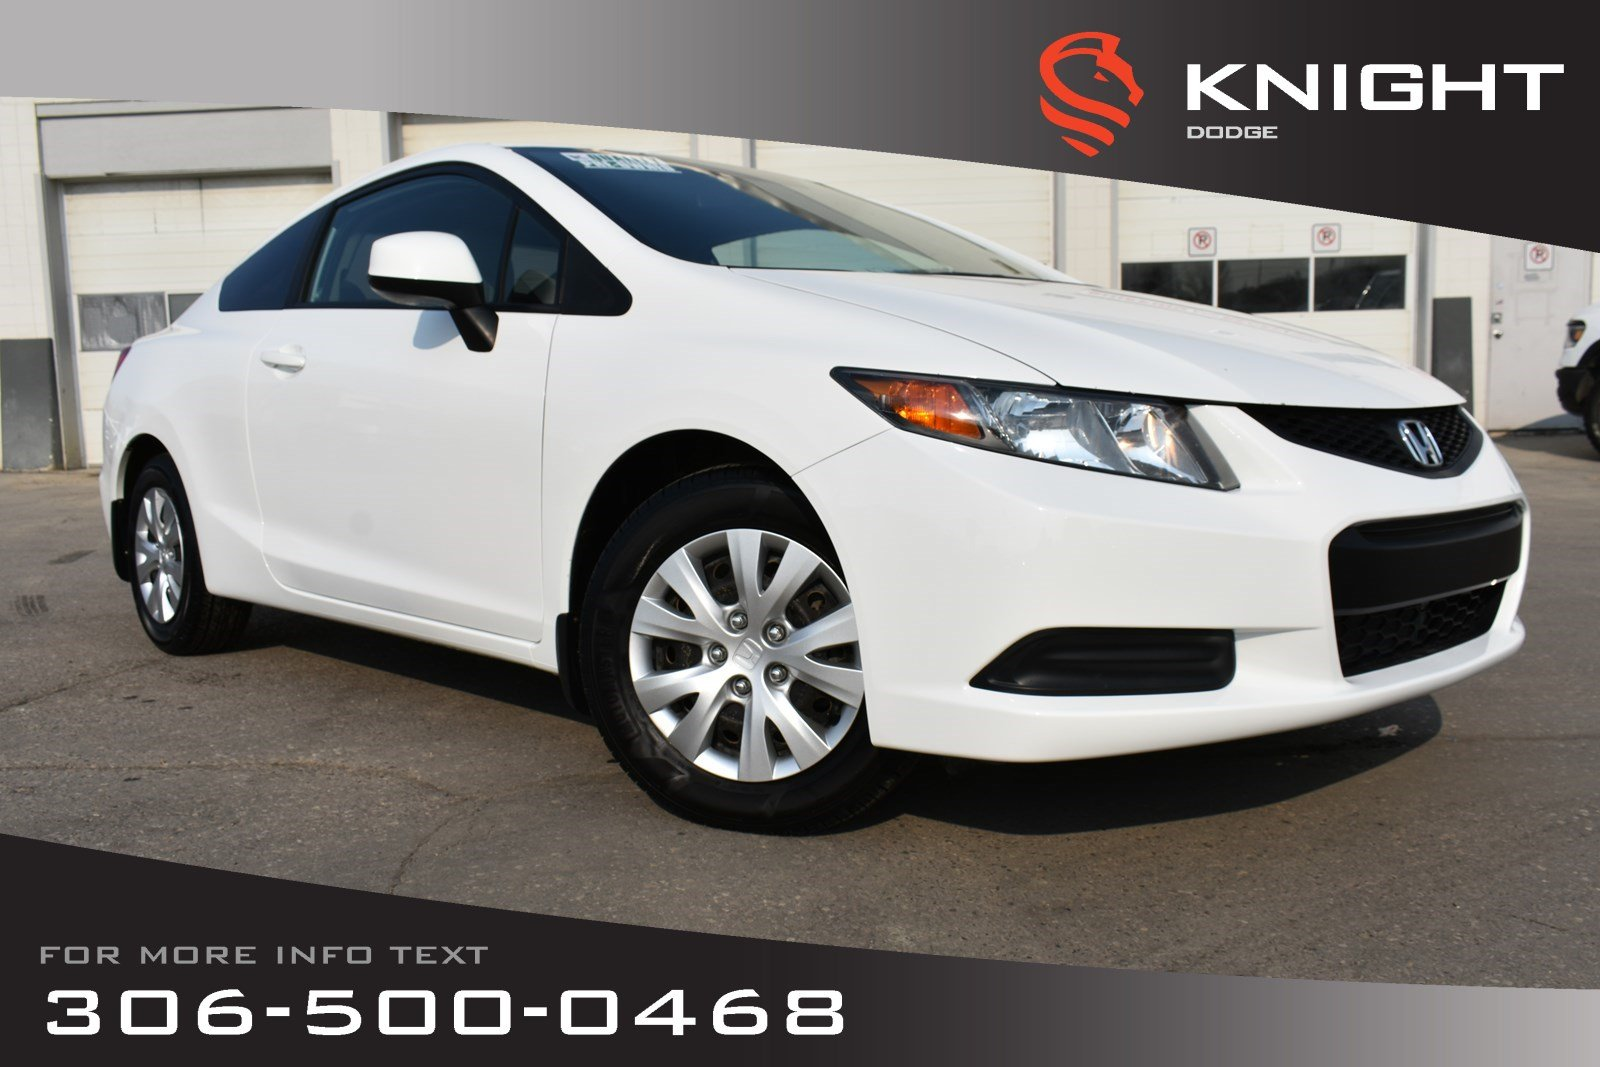 Pre-Owned 2012 Honda Civic Cpe LX | Power Windows | Keyless Entry |